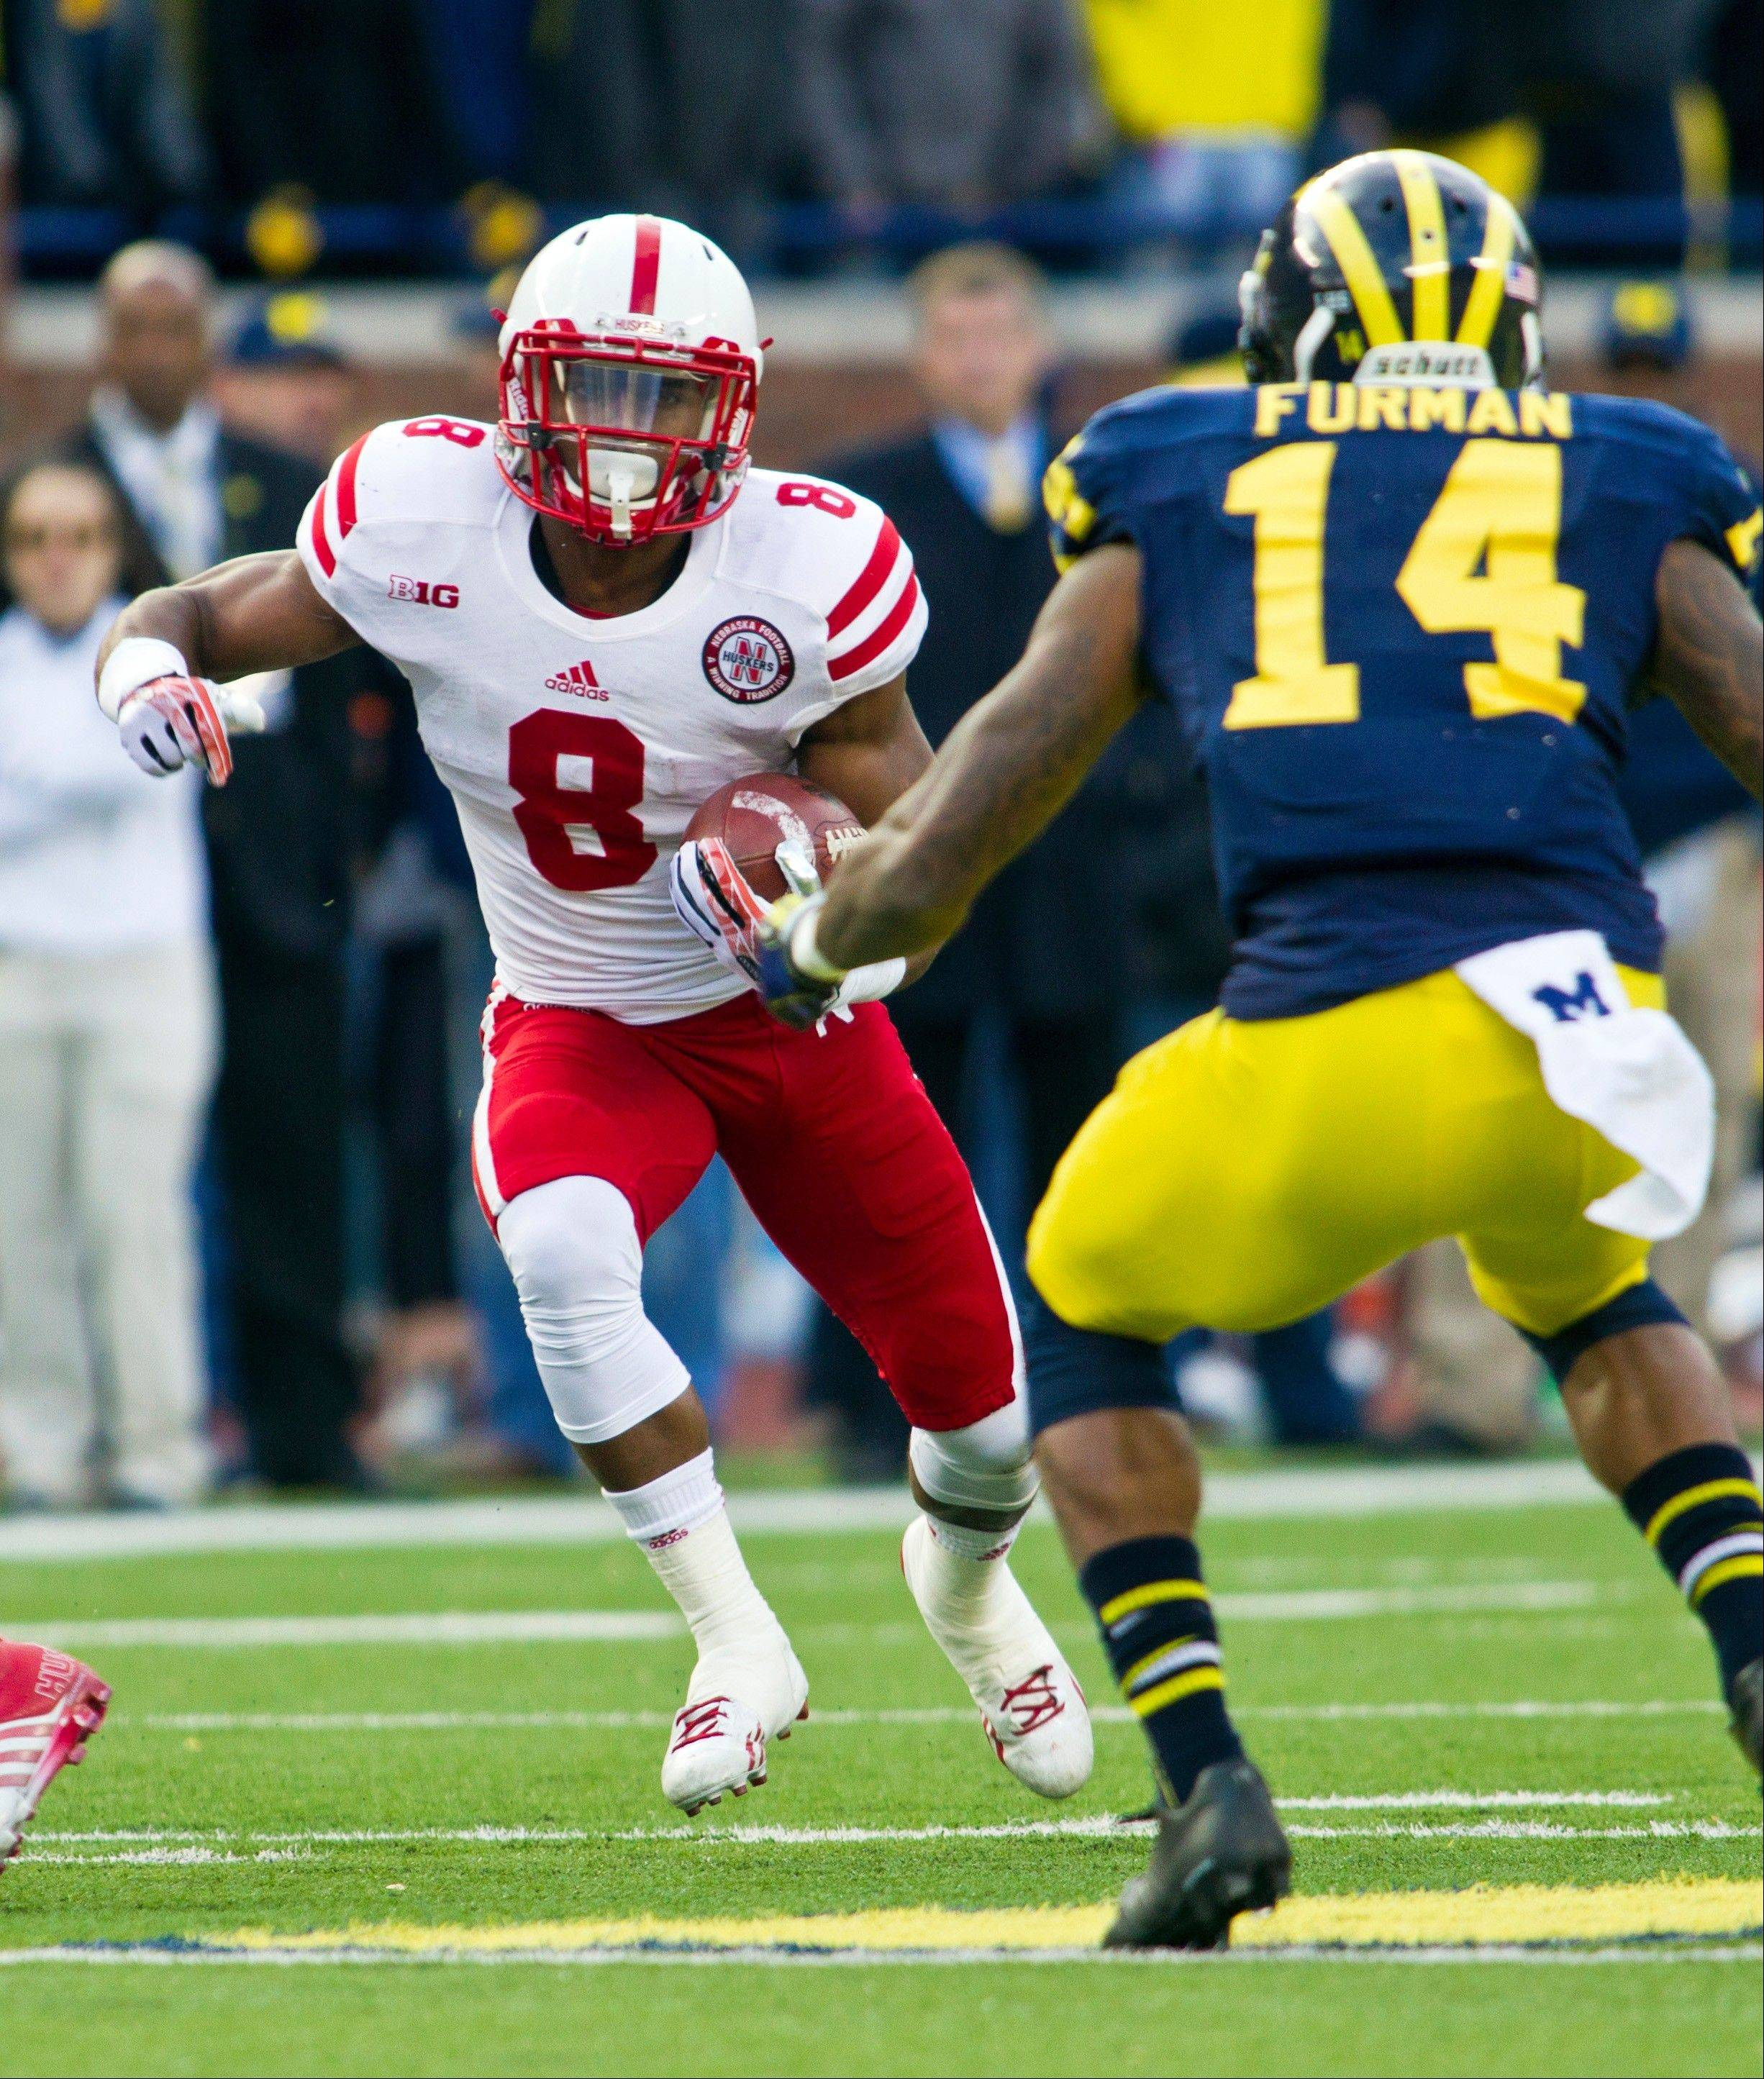 Nebraska running back Ameer Abdullah (8) rushes into coverage by Michigan safety Josh Furman (14) during Saturday's game in Ann Arbor, Mich. The Huskers beat the Wolverines 17-13.